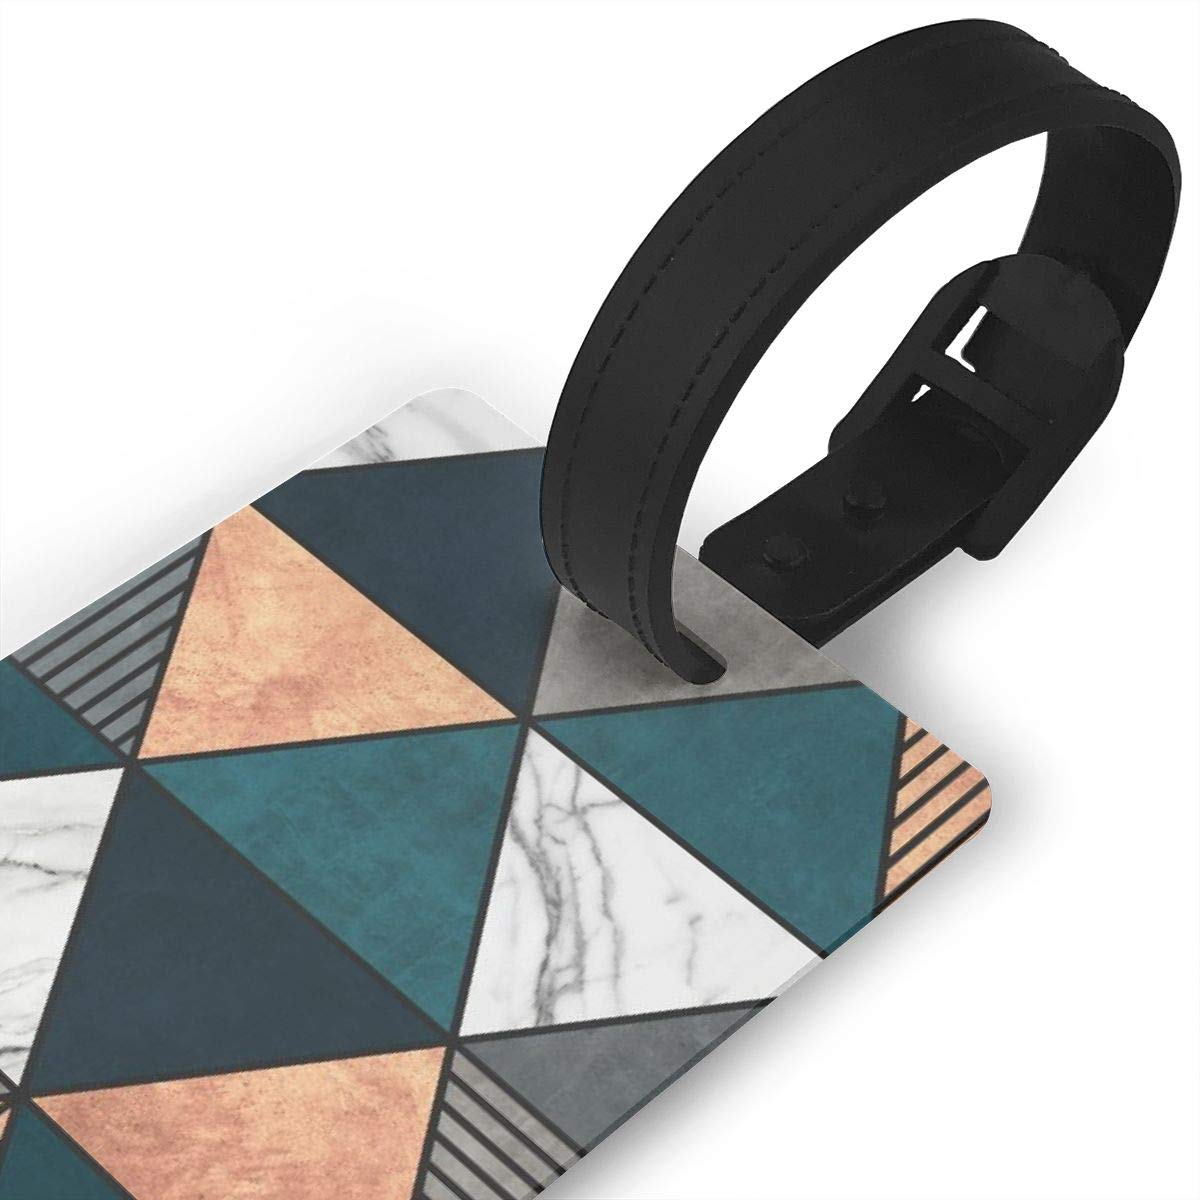 Copper marble and concrete triangles with blue Luggage Tags Suitcase Labels Bag Travel Accessories Set of 2